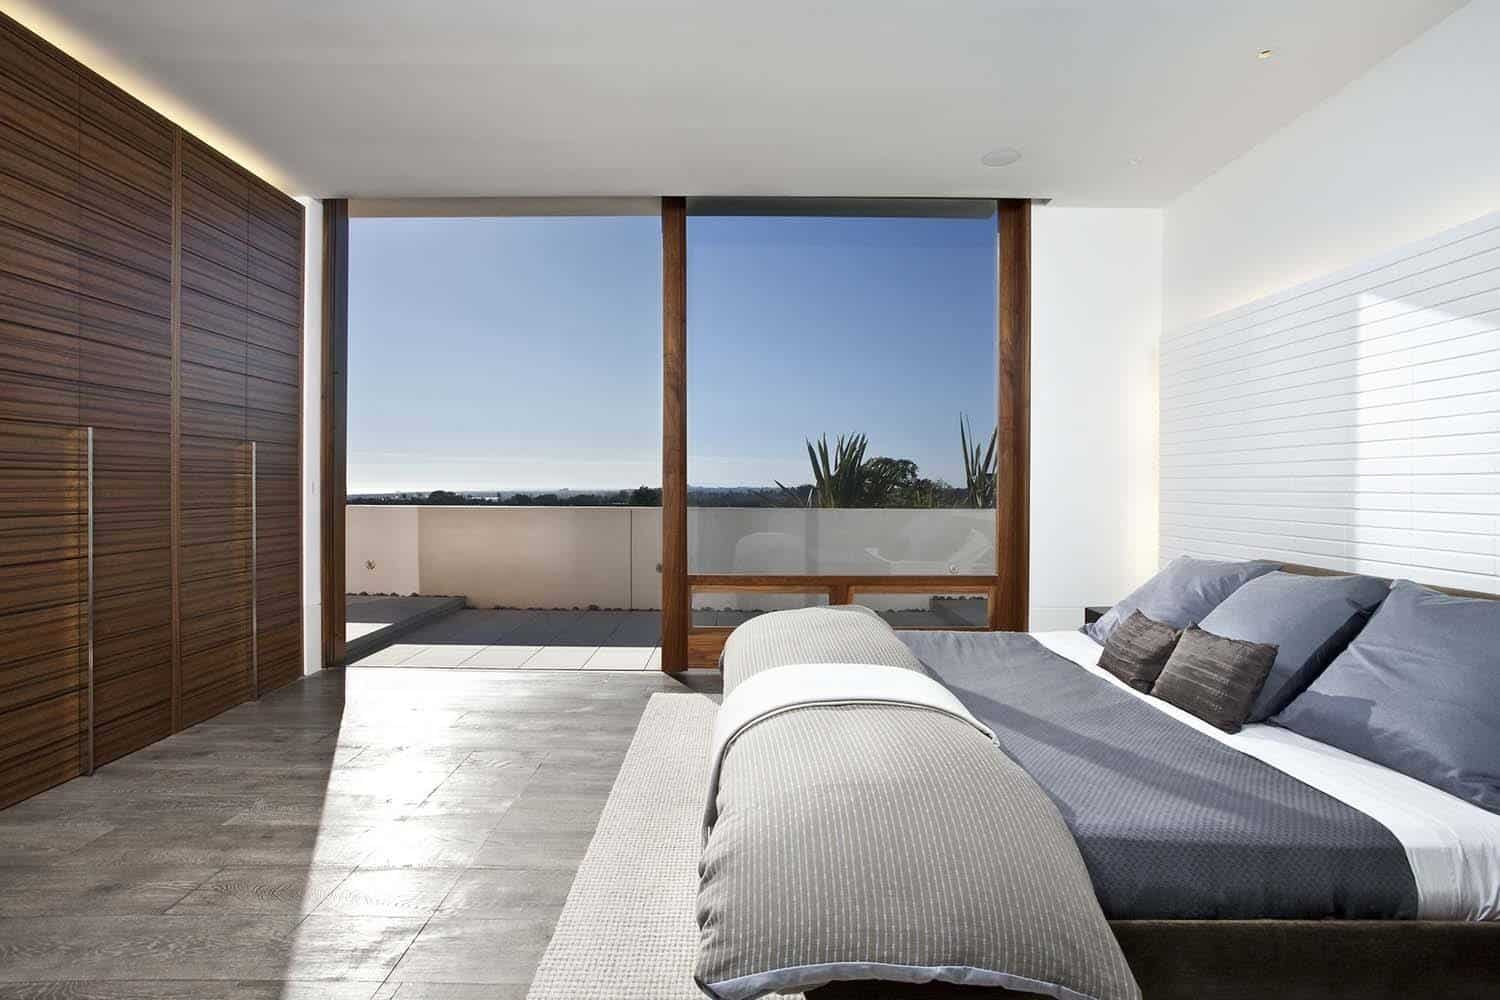 Contemporary Home-Laidlaw Schultz Architects-13-1 Kindesign